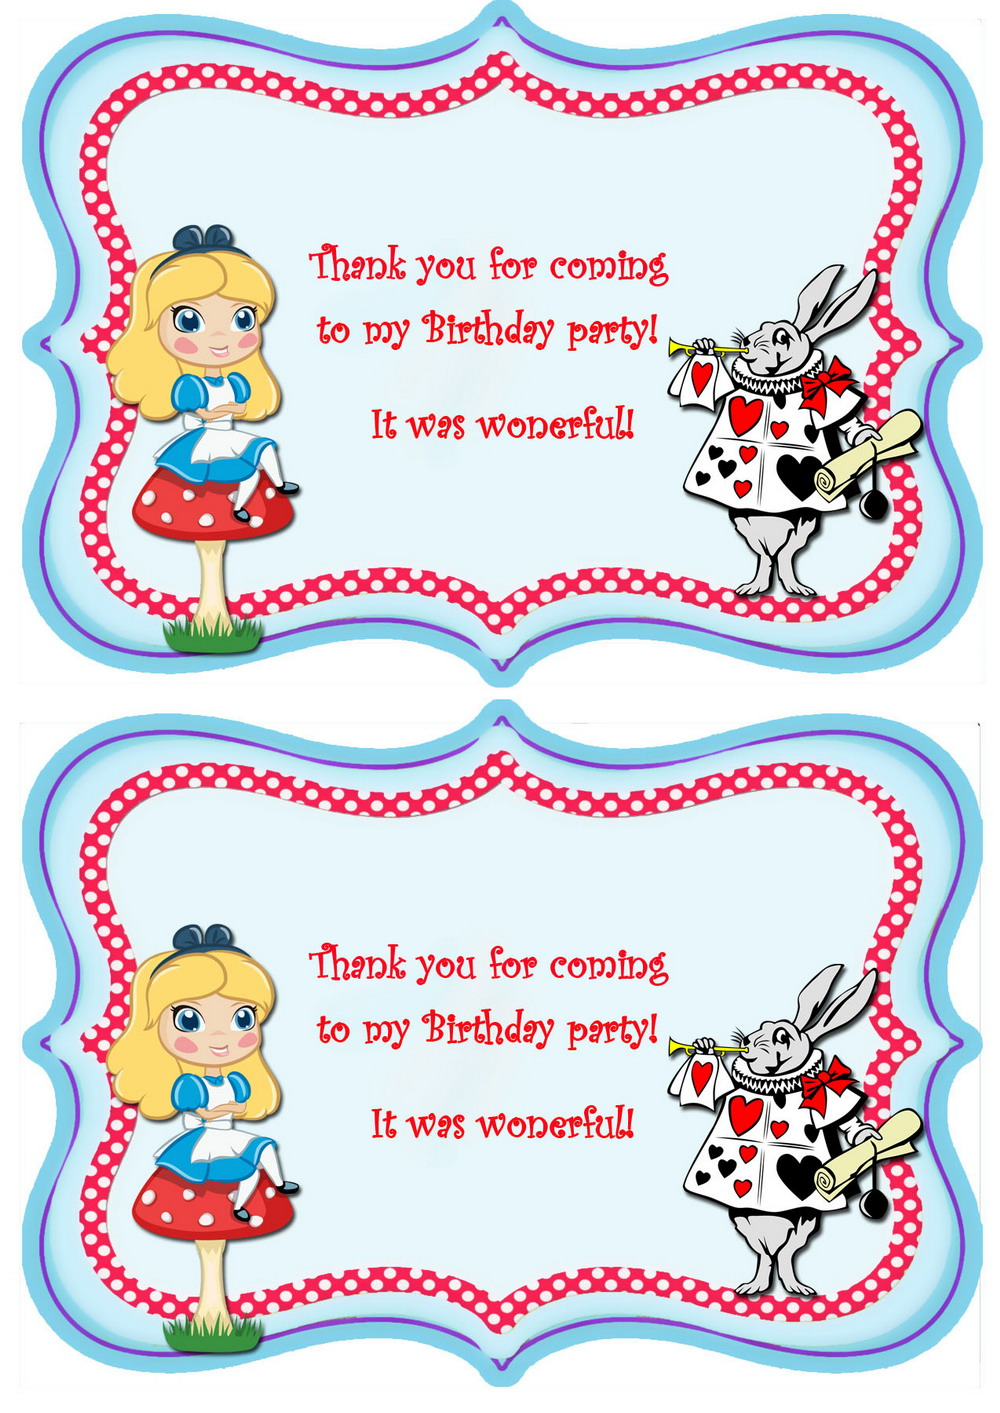 Alice in wonderland thank you cards birthday printable alice thankyou cards2 st pronofoot35fo Images